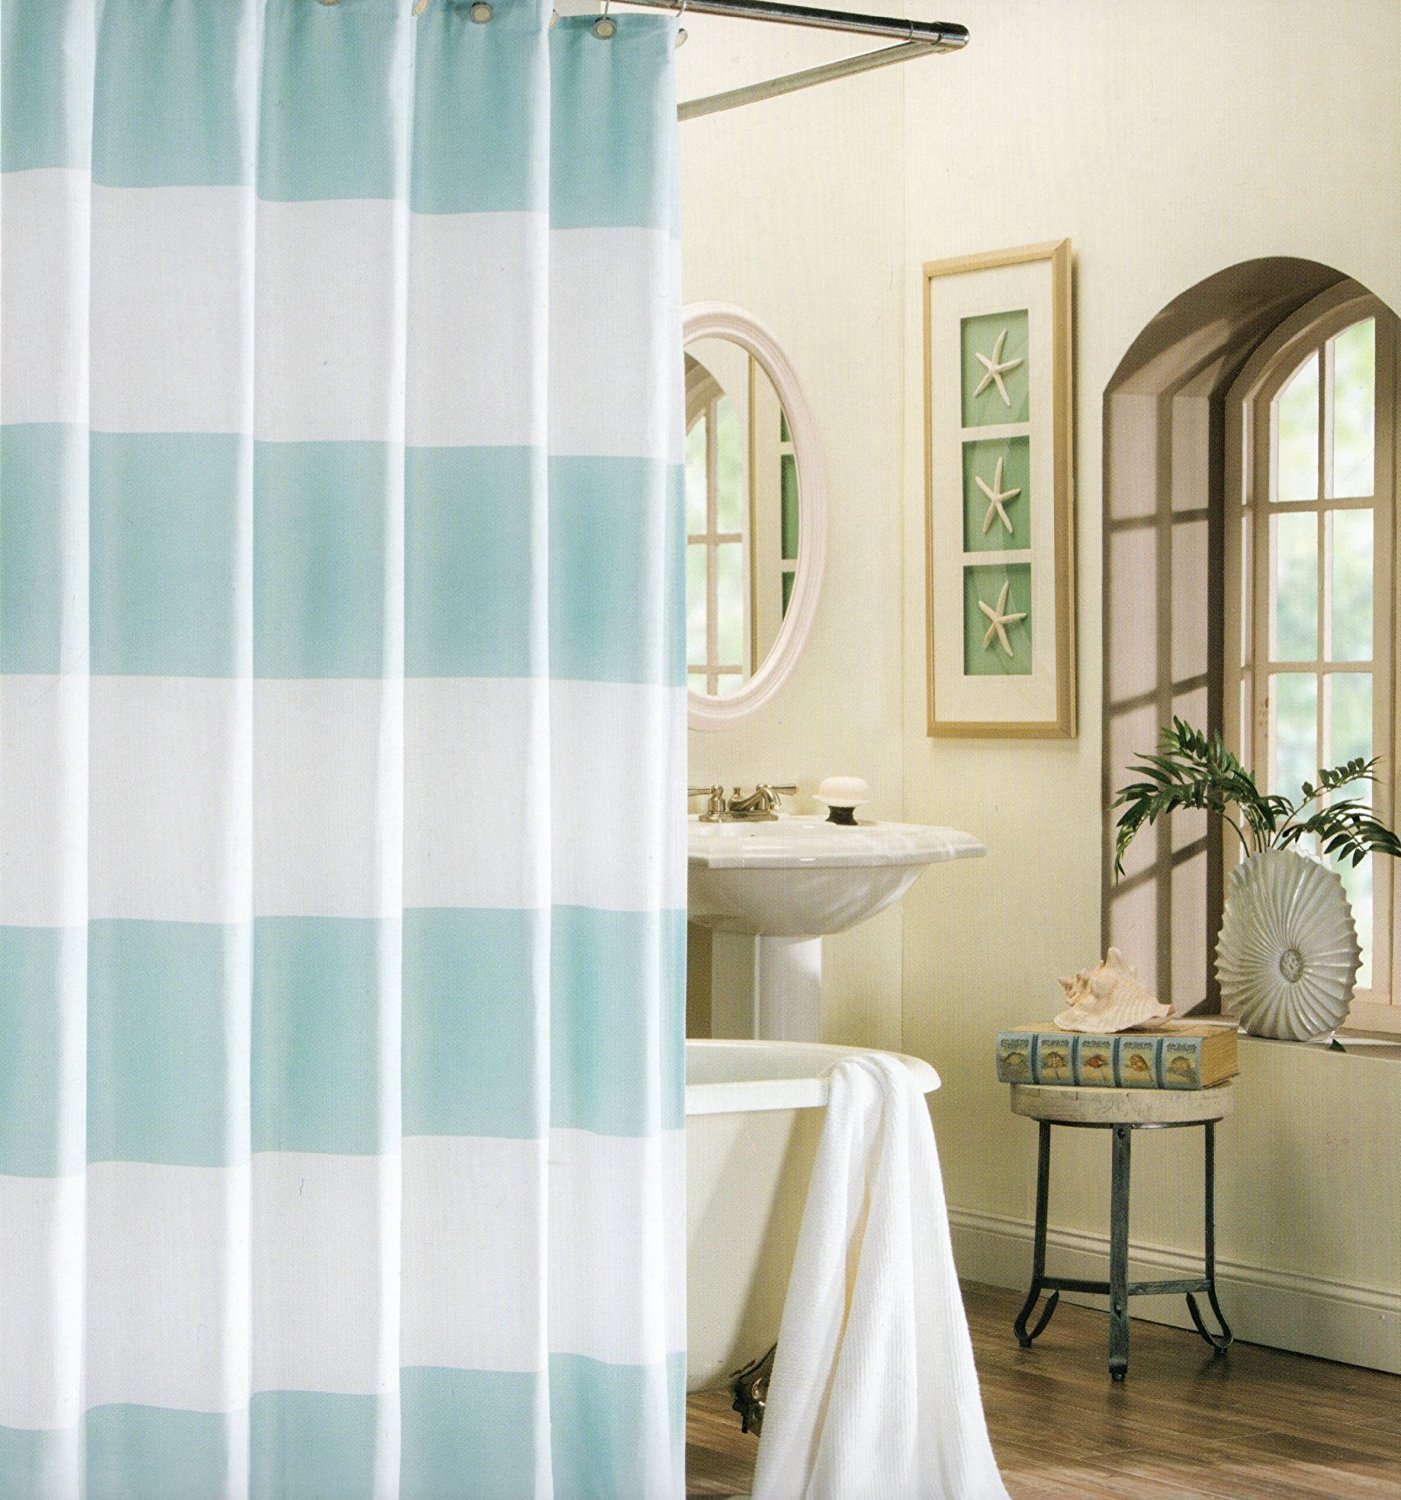 Memory Home 100 Polyester Shower Curtain Wide Stripes Fabric Shower Curtain Turquoise Navy Blue Beige Turquoise 66x72inch Fabric Shower Polyester Shower Curtainshower Curtain Aliexpress